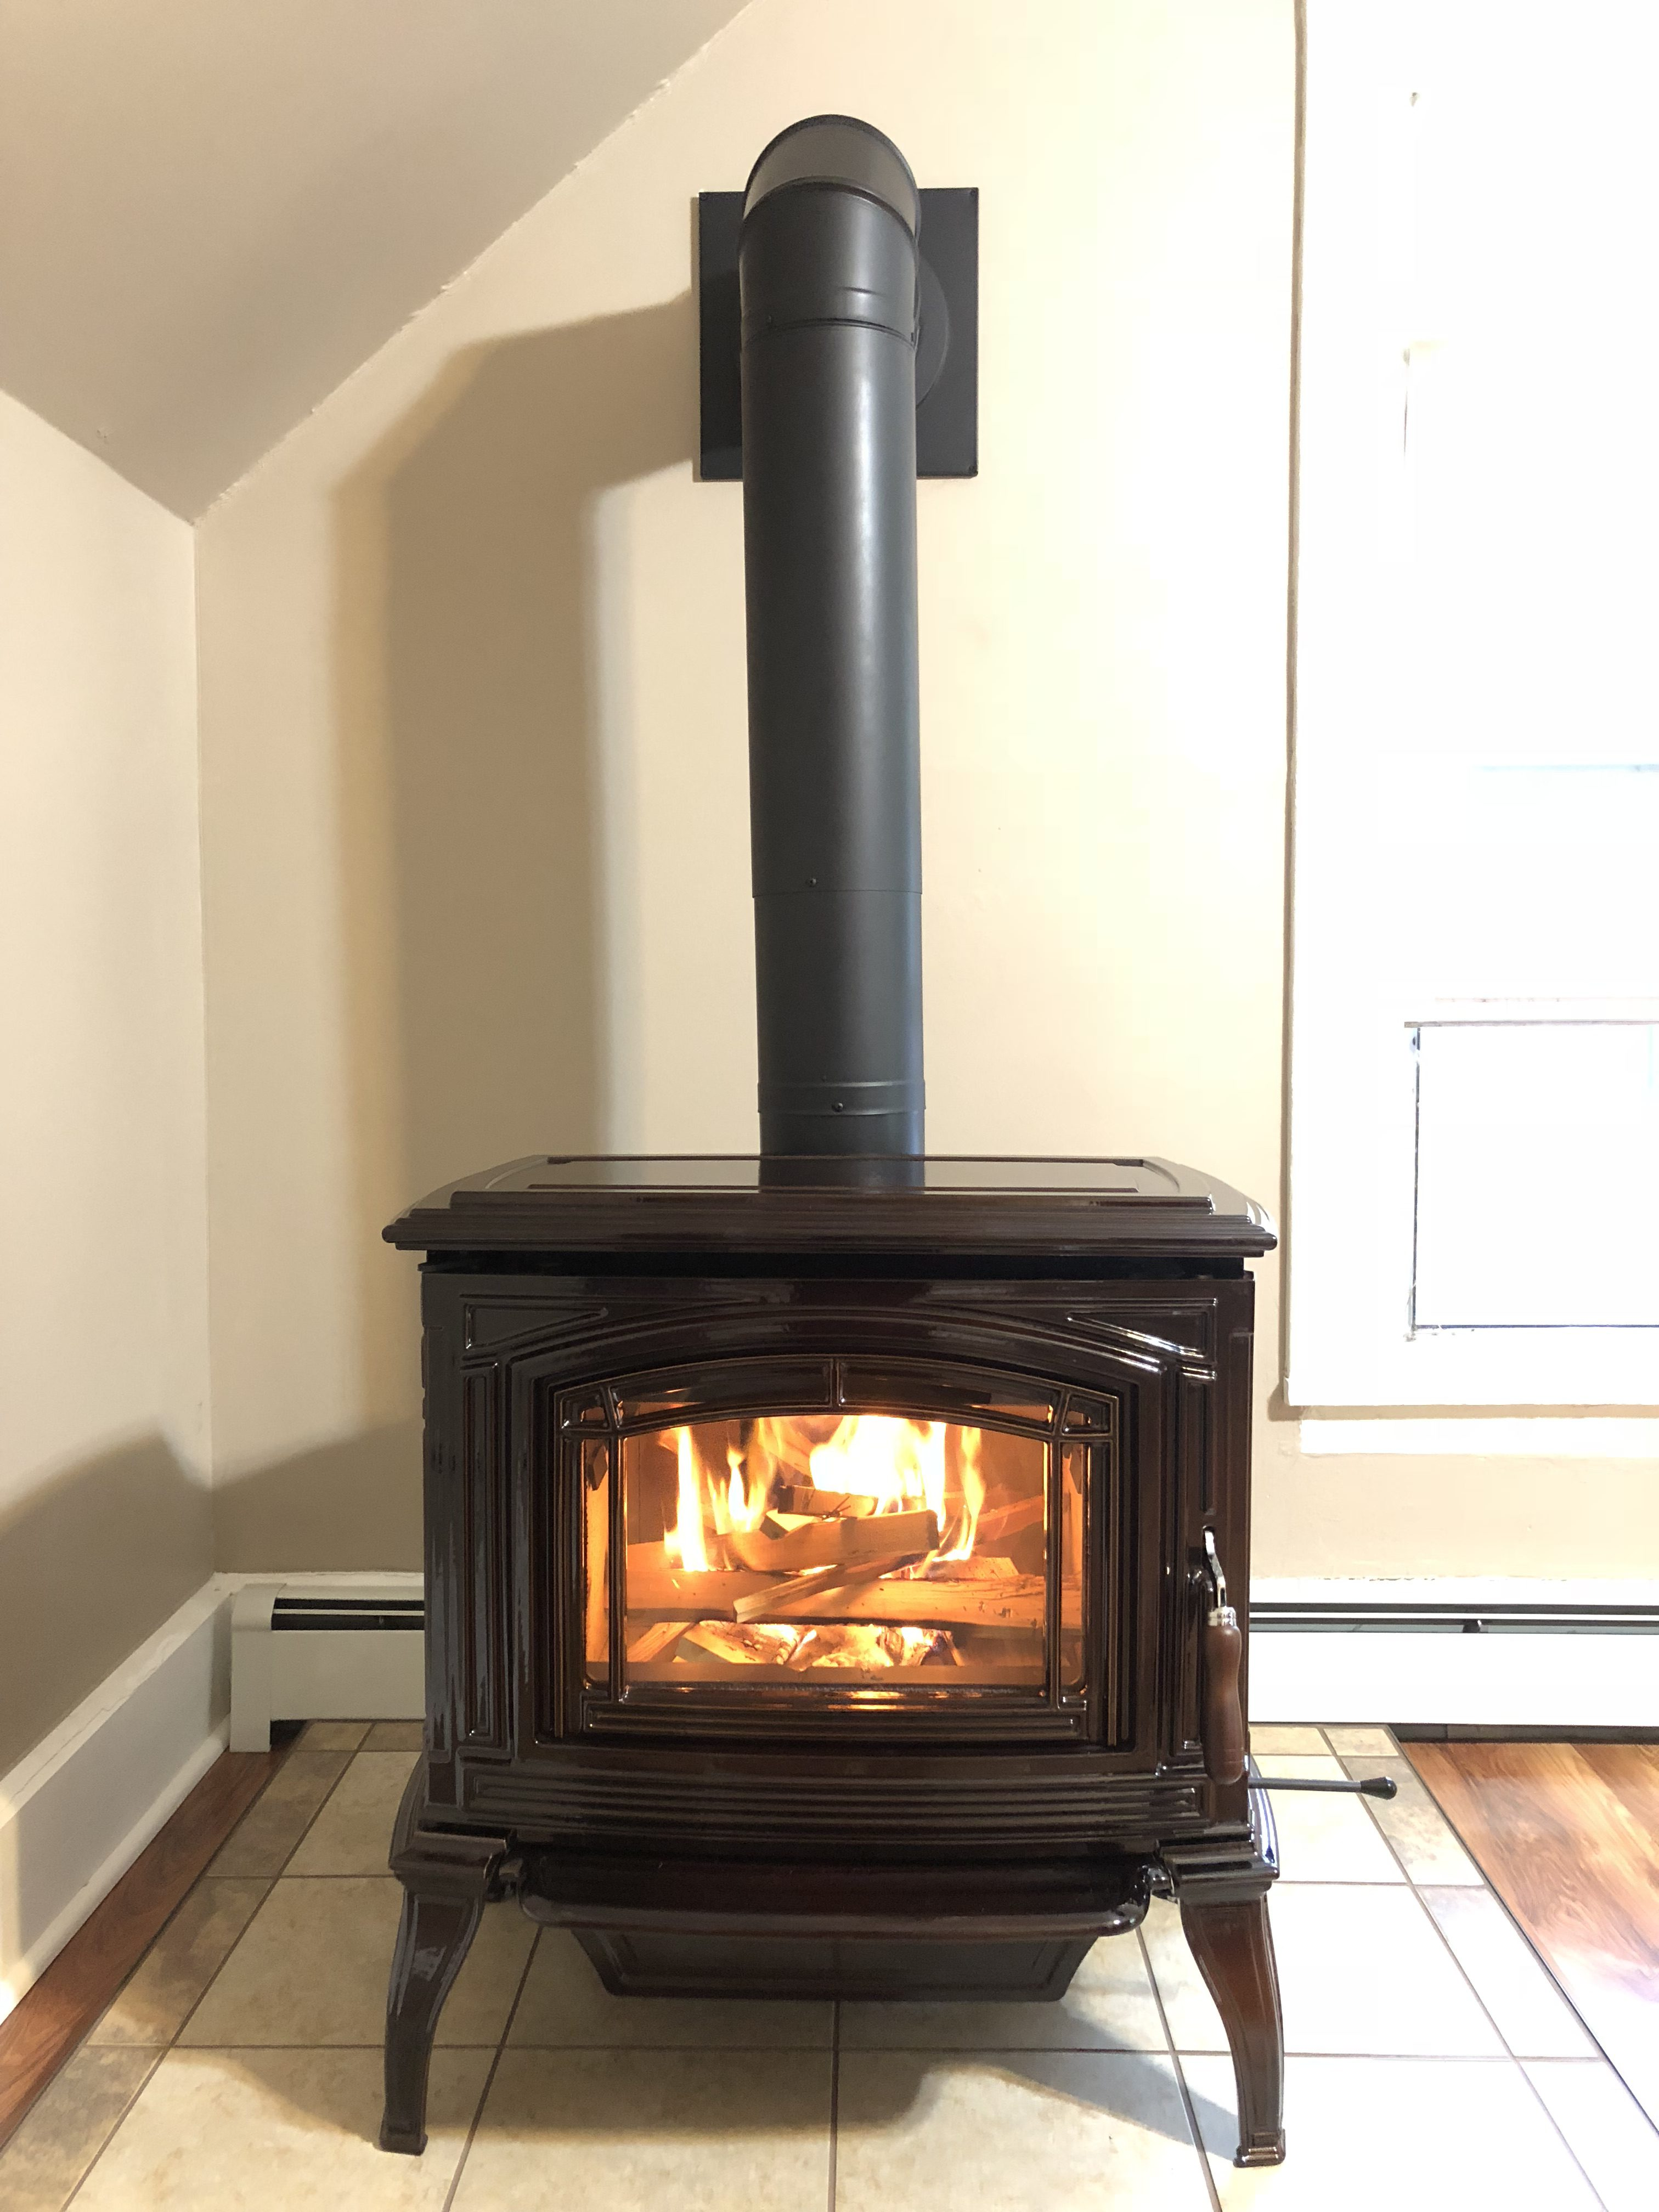 Image of a traditional Boston 1700 wood stove by Enviro featuring sleek Antique Chestnut Enamel Finish.